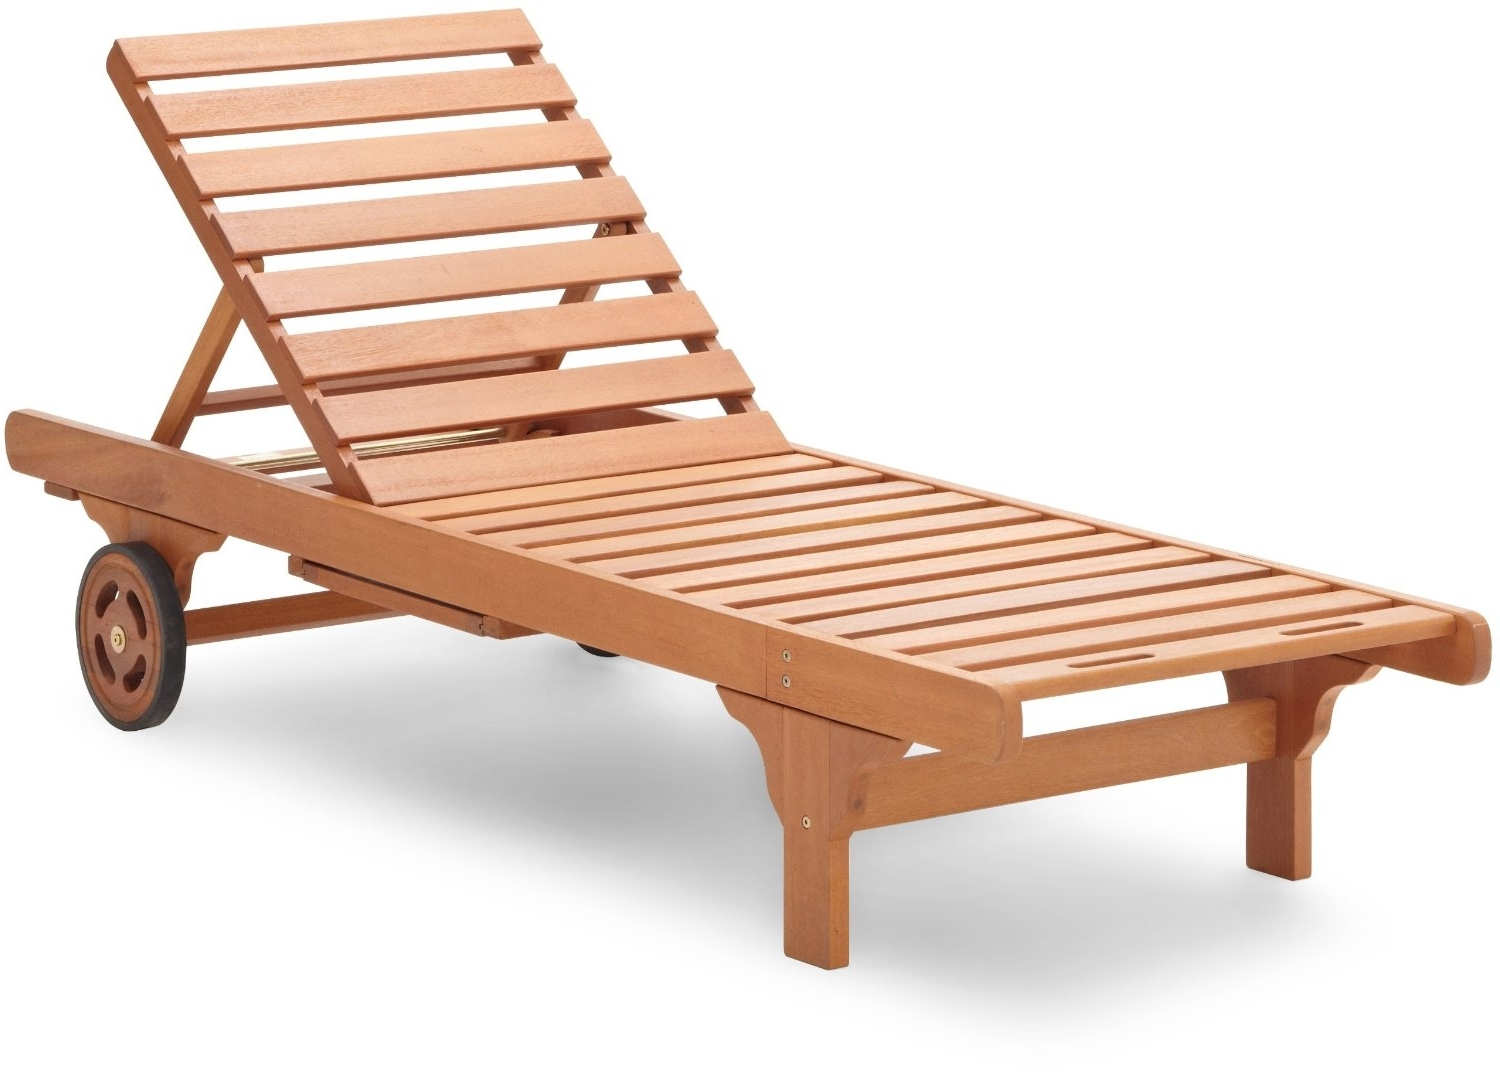 Garden Chaise Lounge Chairs Intended For 2017 Wood Outdoor Chaise Lounge Chairs : Best Outdoor Chaise Lounge (View 15 of 15)